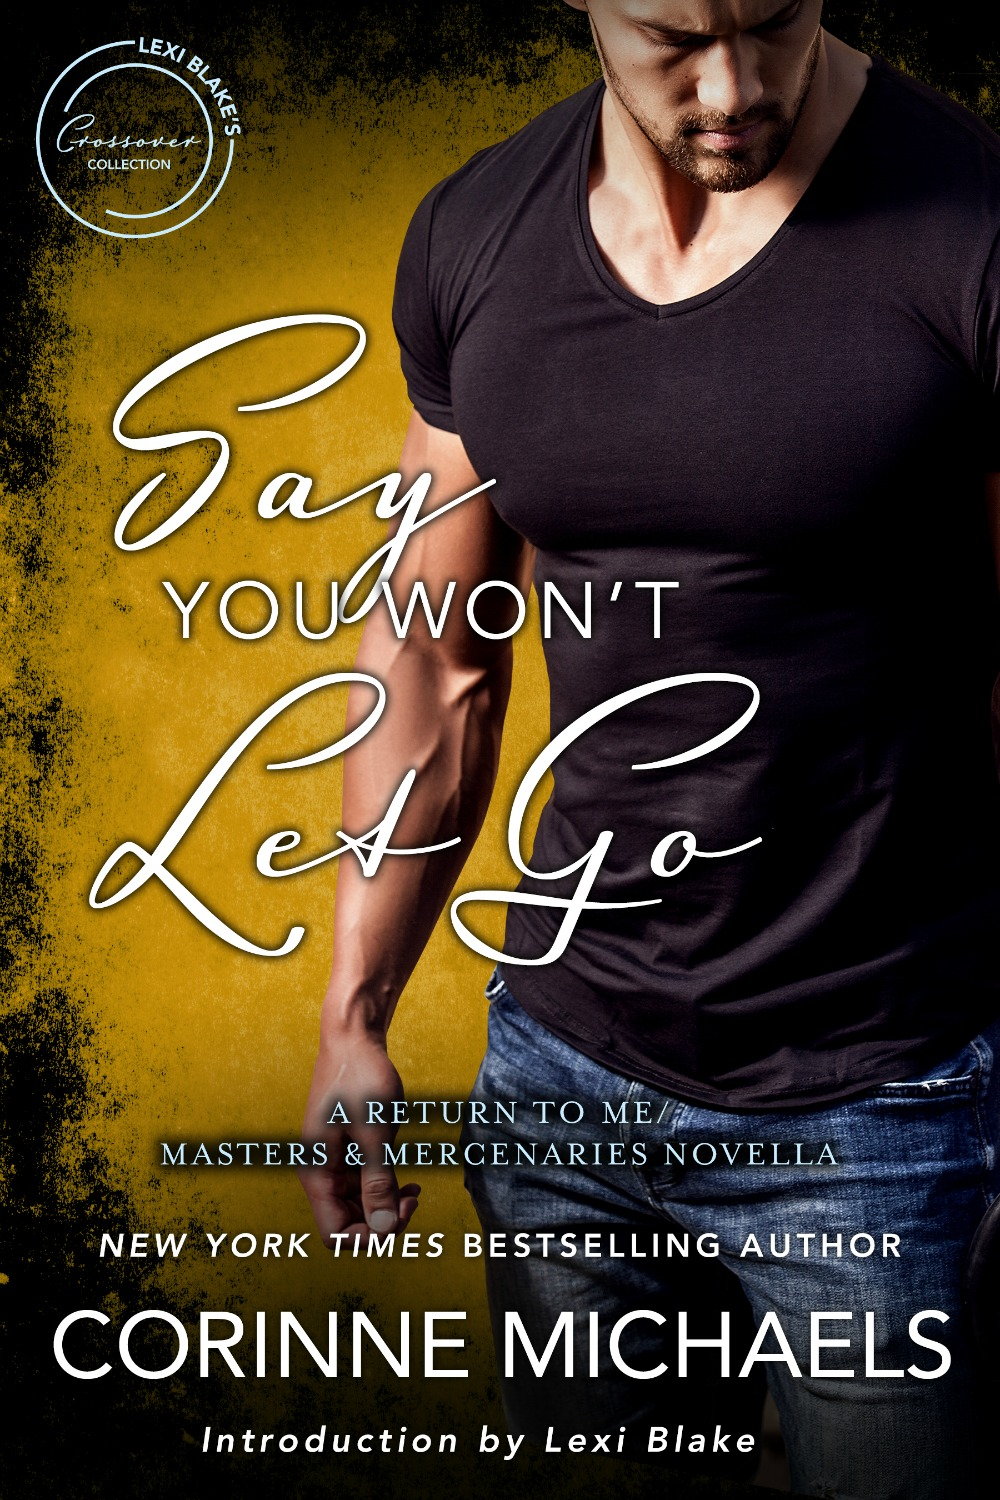 Say You Won't Let Go: A Return to Me/Masters and Mercenaries Novella by Corinne Michaels   Amazon:   https://amzn.to/2uFZdgm   B&N:  http://bit.ly/2Go2eD0  iBooks:  https://apple.co/2H9SCNP  Kobo:  http://bit.ly/2CsPrgc  Google Play:  http://bit.ly/2ujMcsd